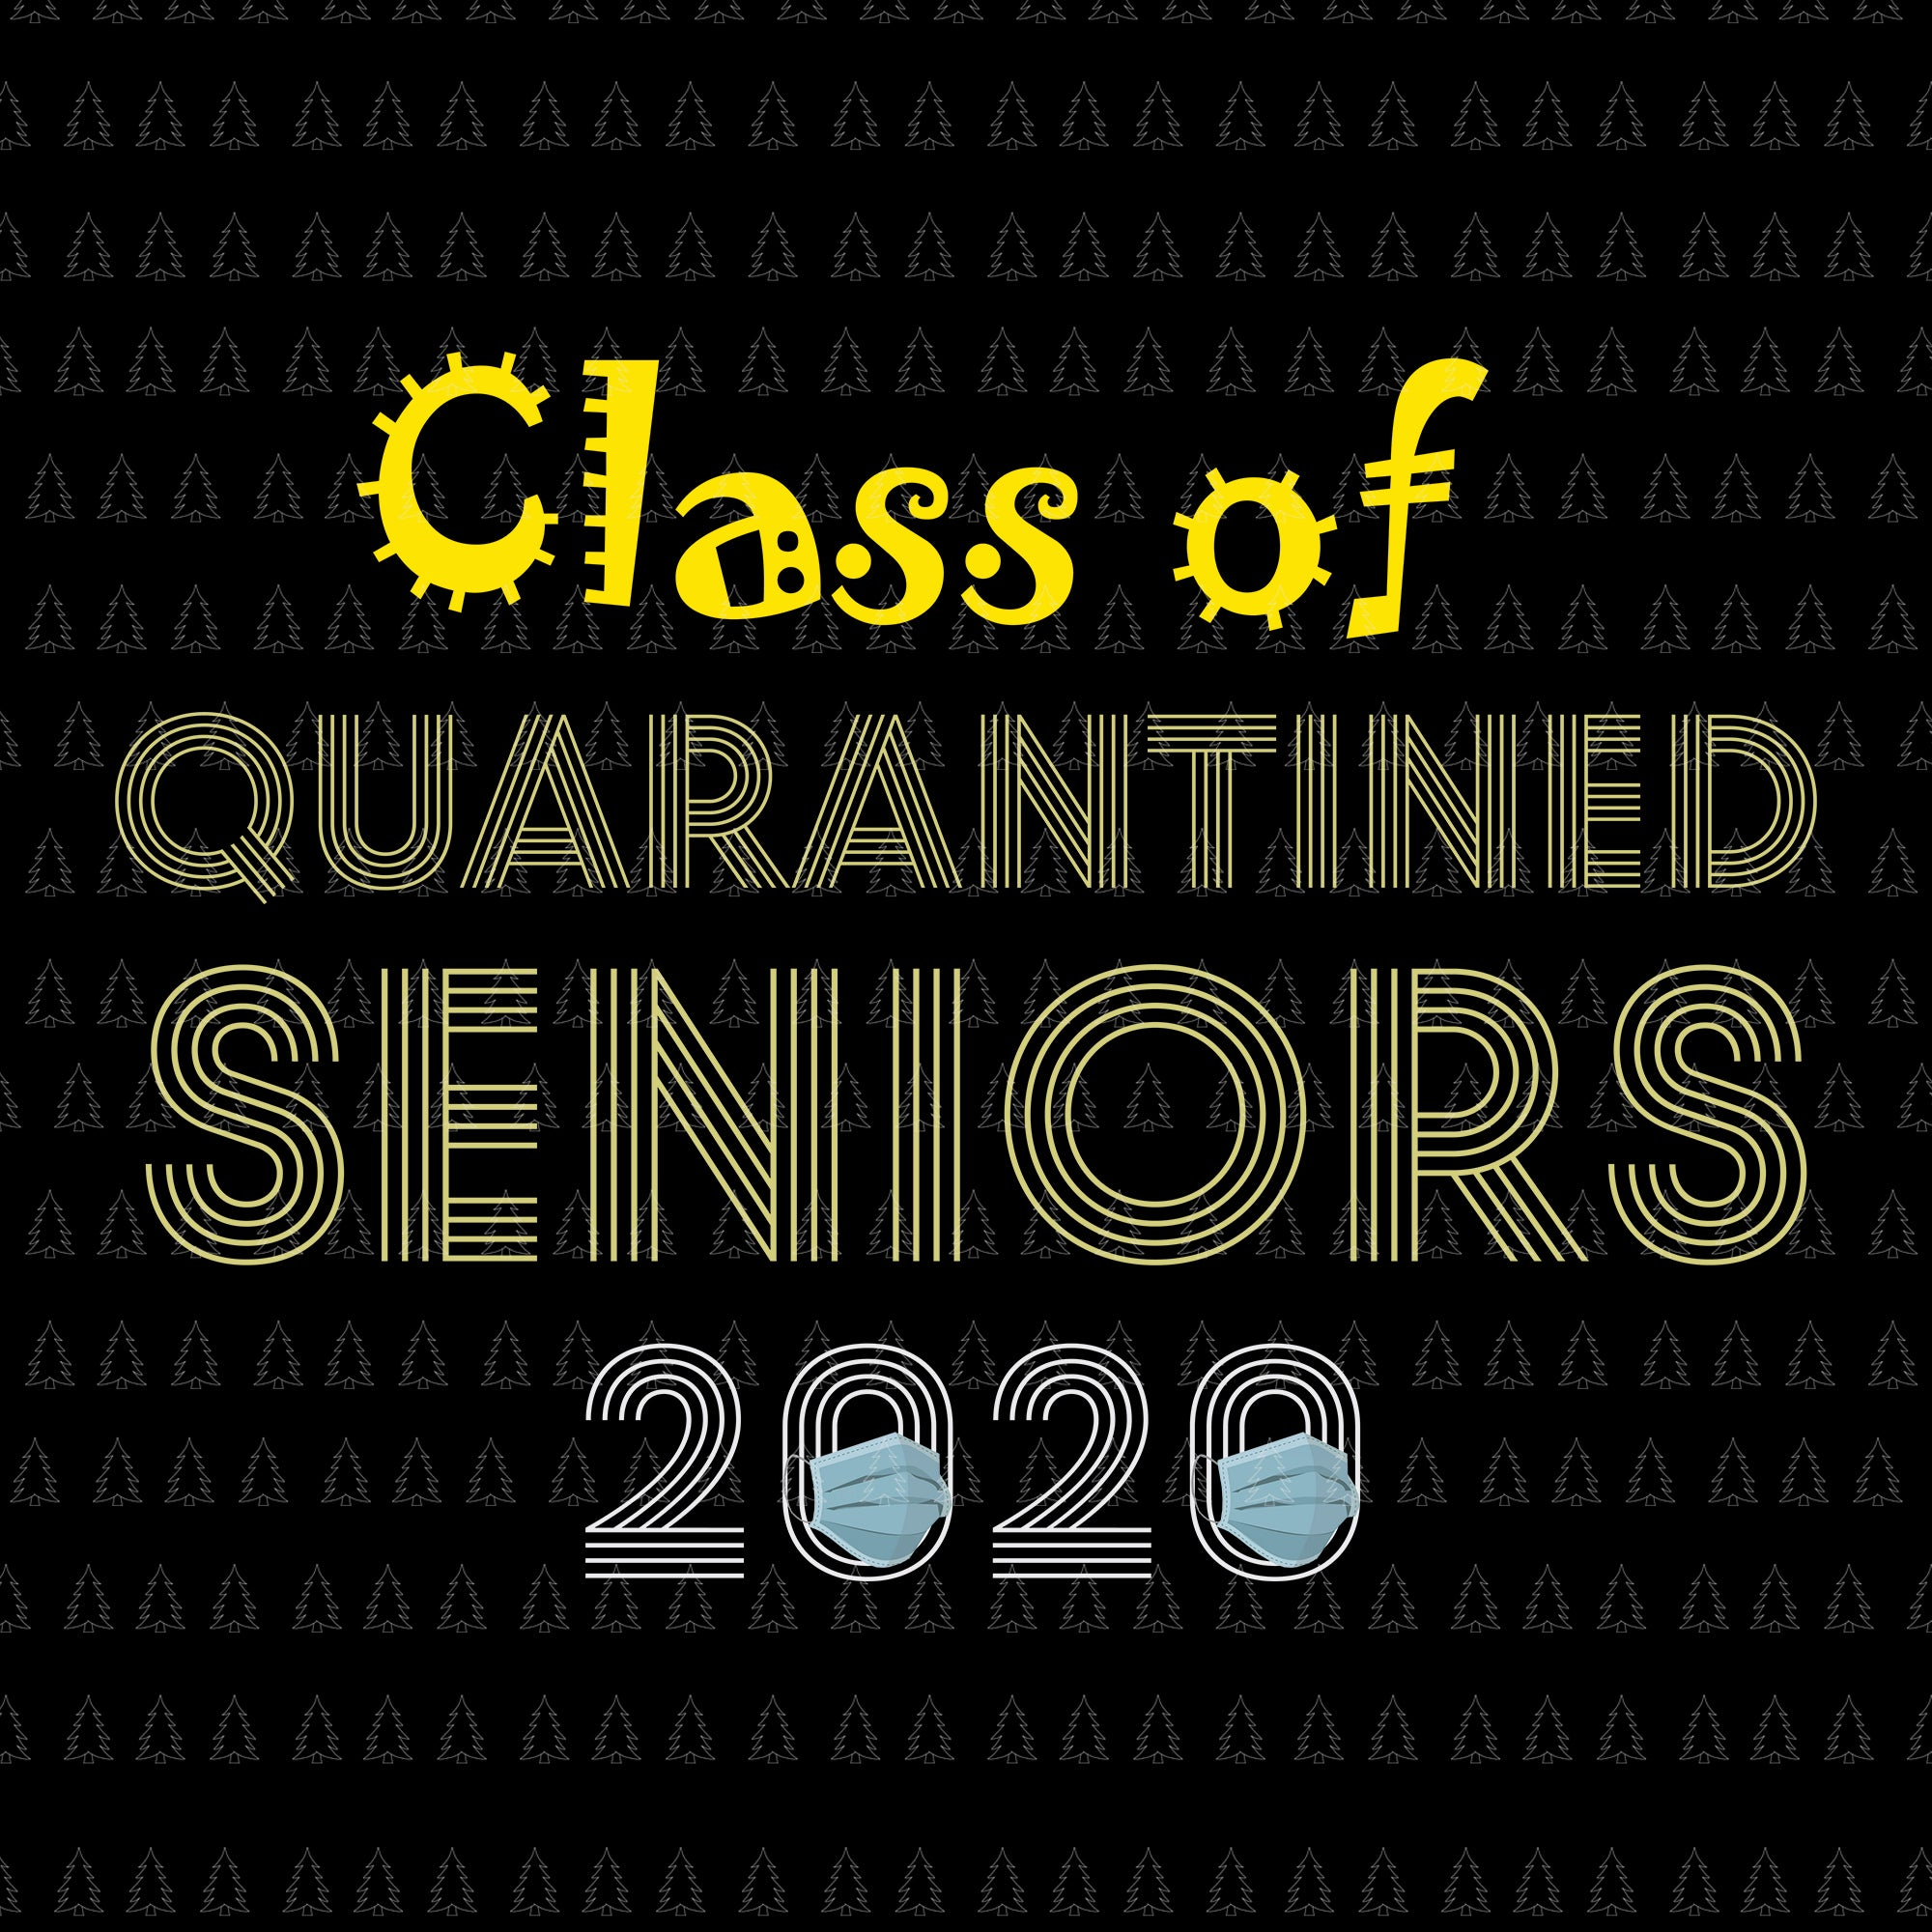 Class of quarantined 2020 svg, class of 2020 the year when shit got real, Class of quarantined seniors 2020, senior 2020 svg, senior 2020